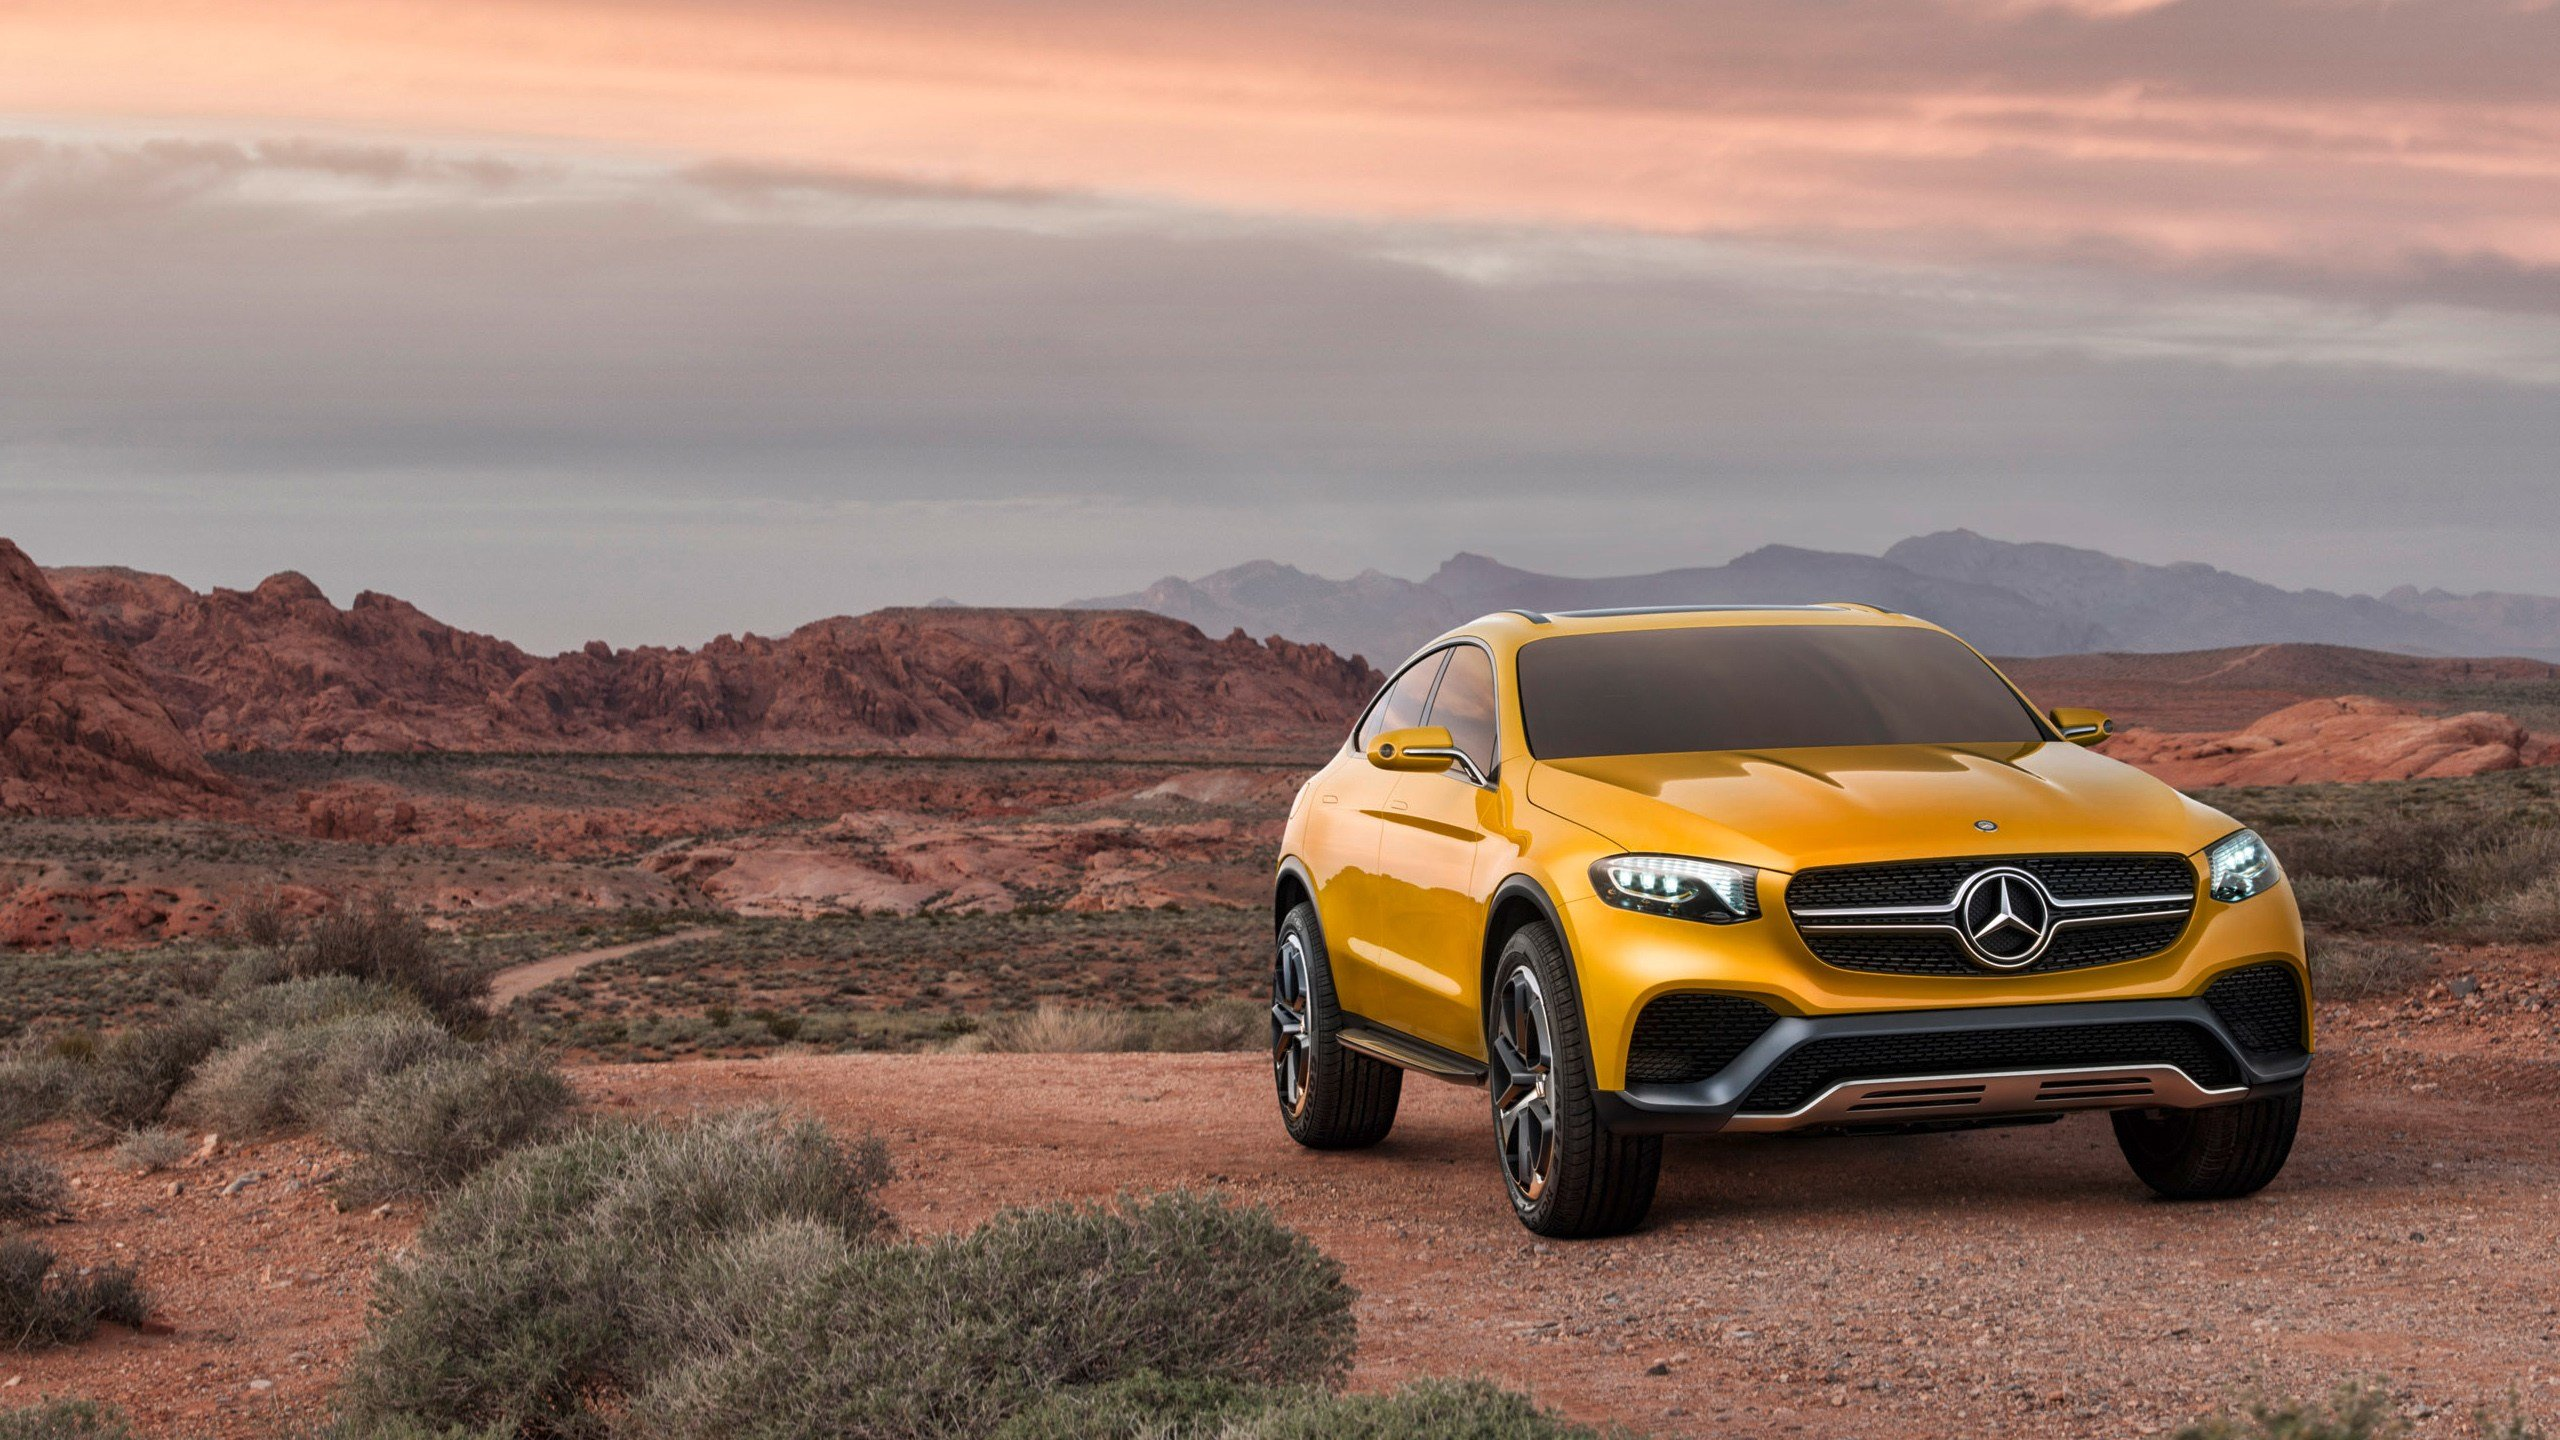 Latest 2015 Mercedes Benz Glc Coupe Concept Wallpaper Hd Car Free Download